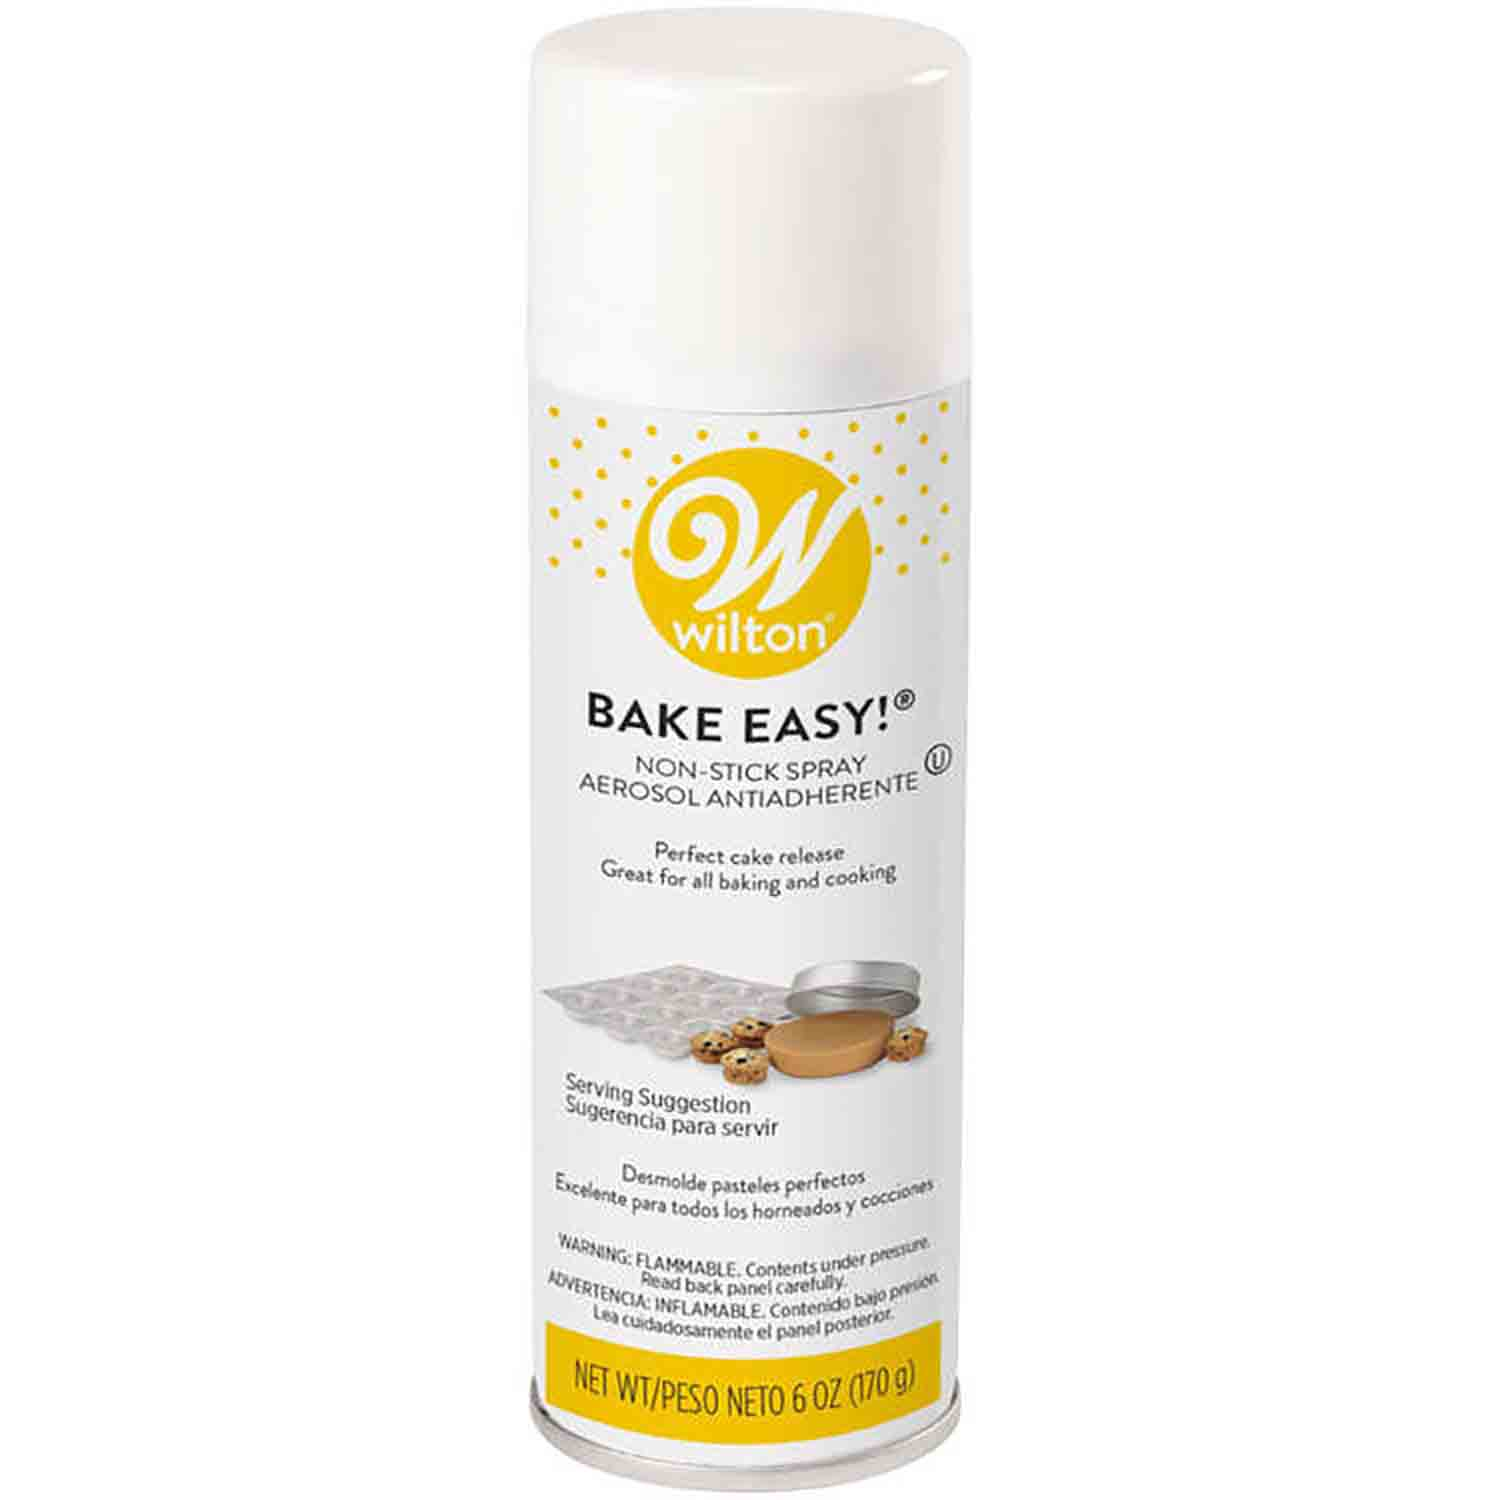 Bake Easy! Nonstick Pan Spray